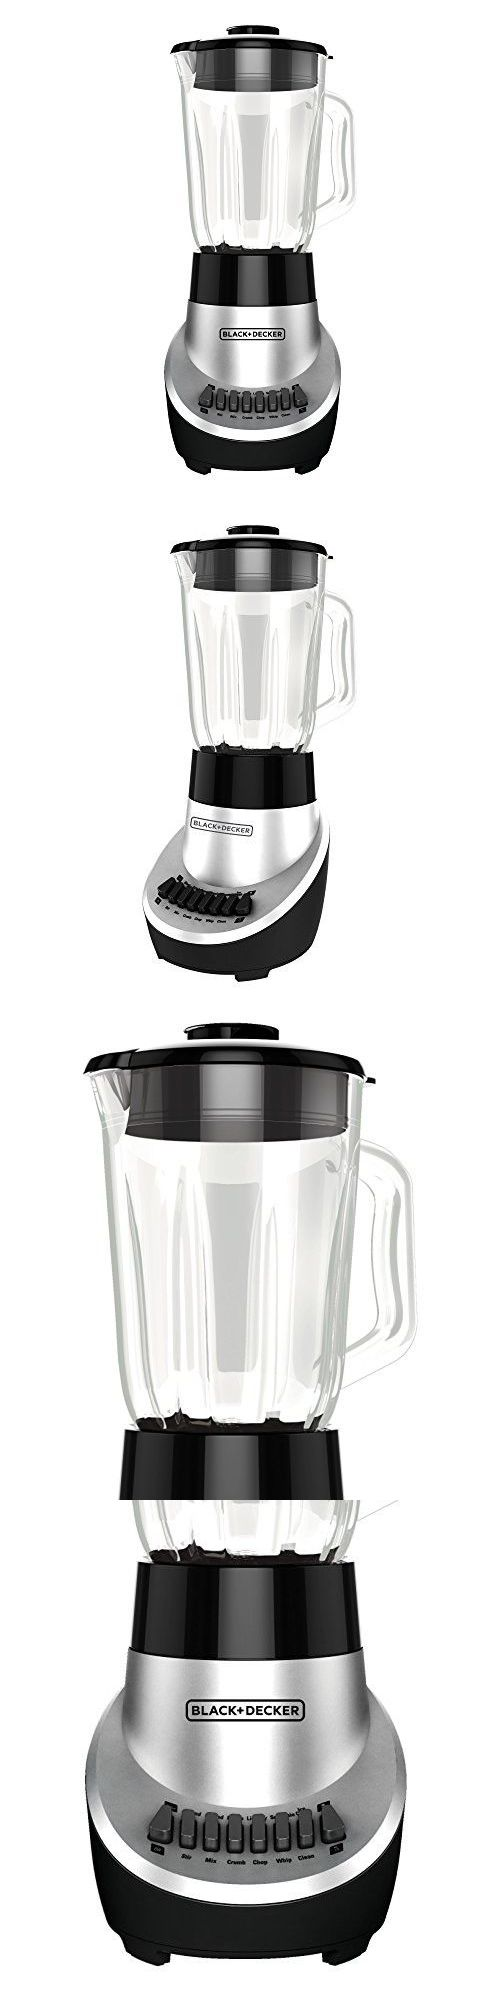 Countertop Blenders 133704 Black Decker Bl1130sg Fusionblade